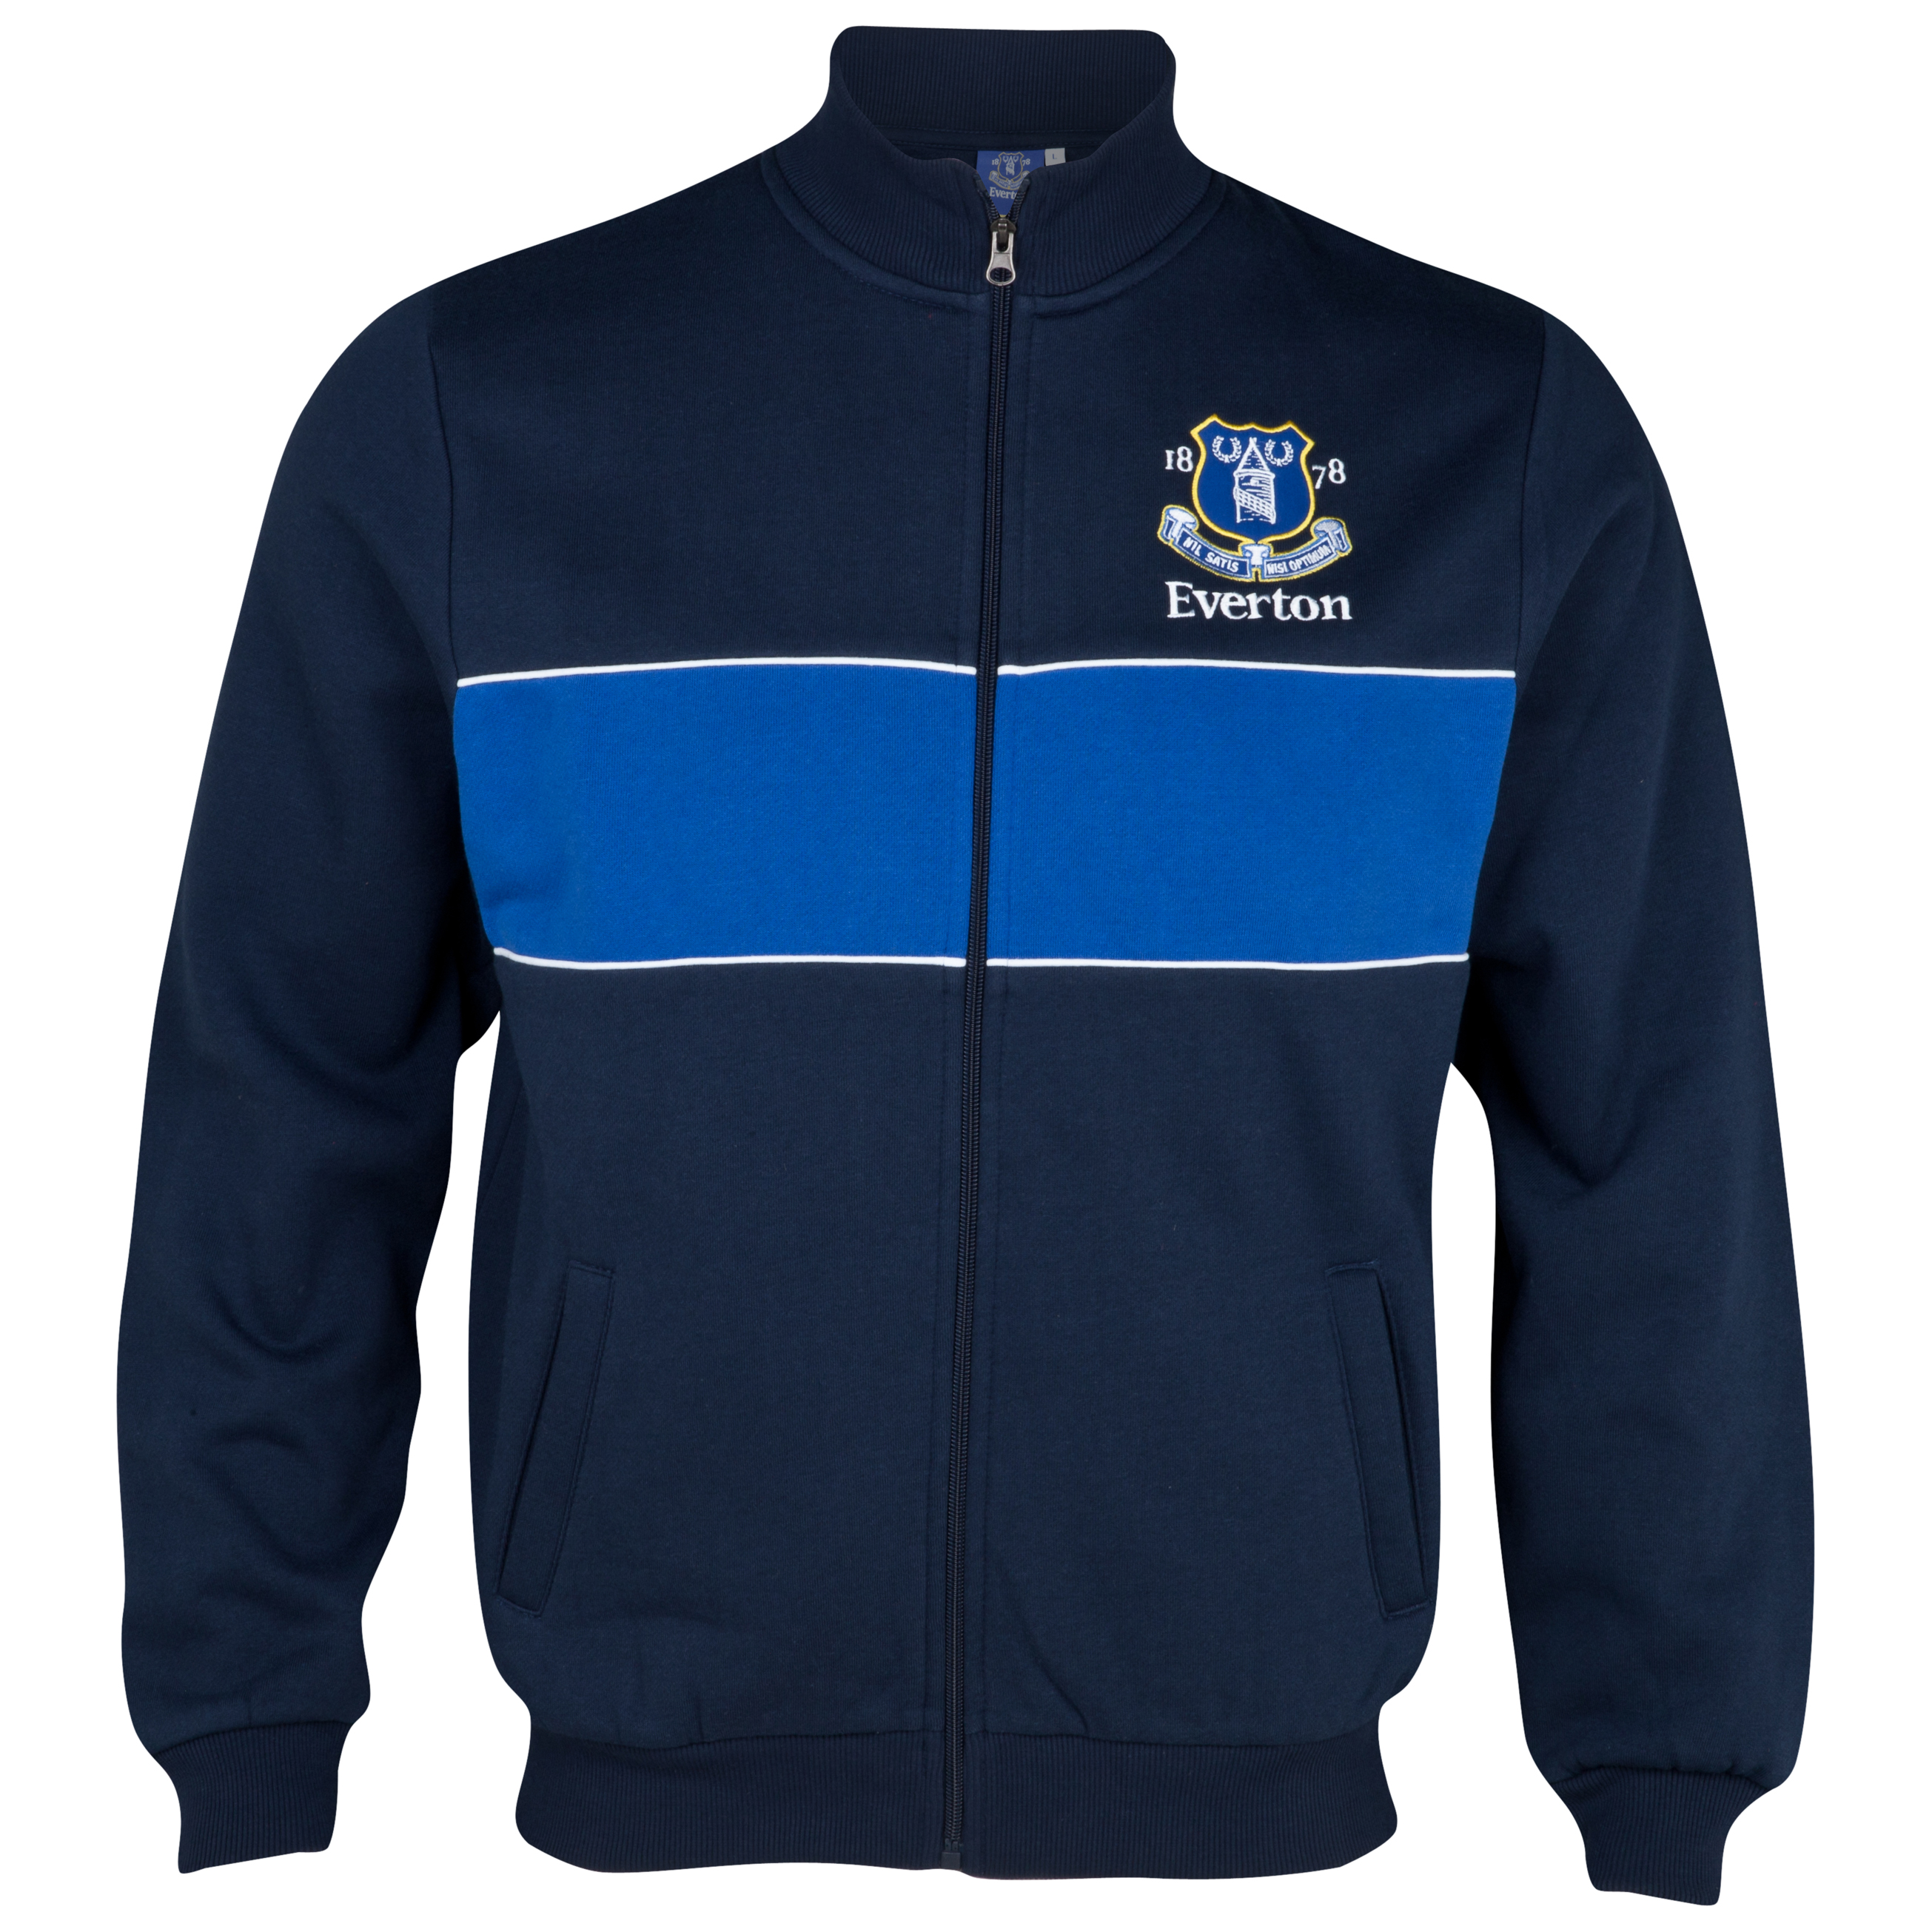 Everton Essential Track Top - Navy/White